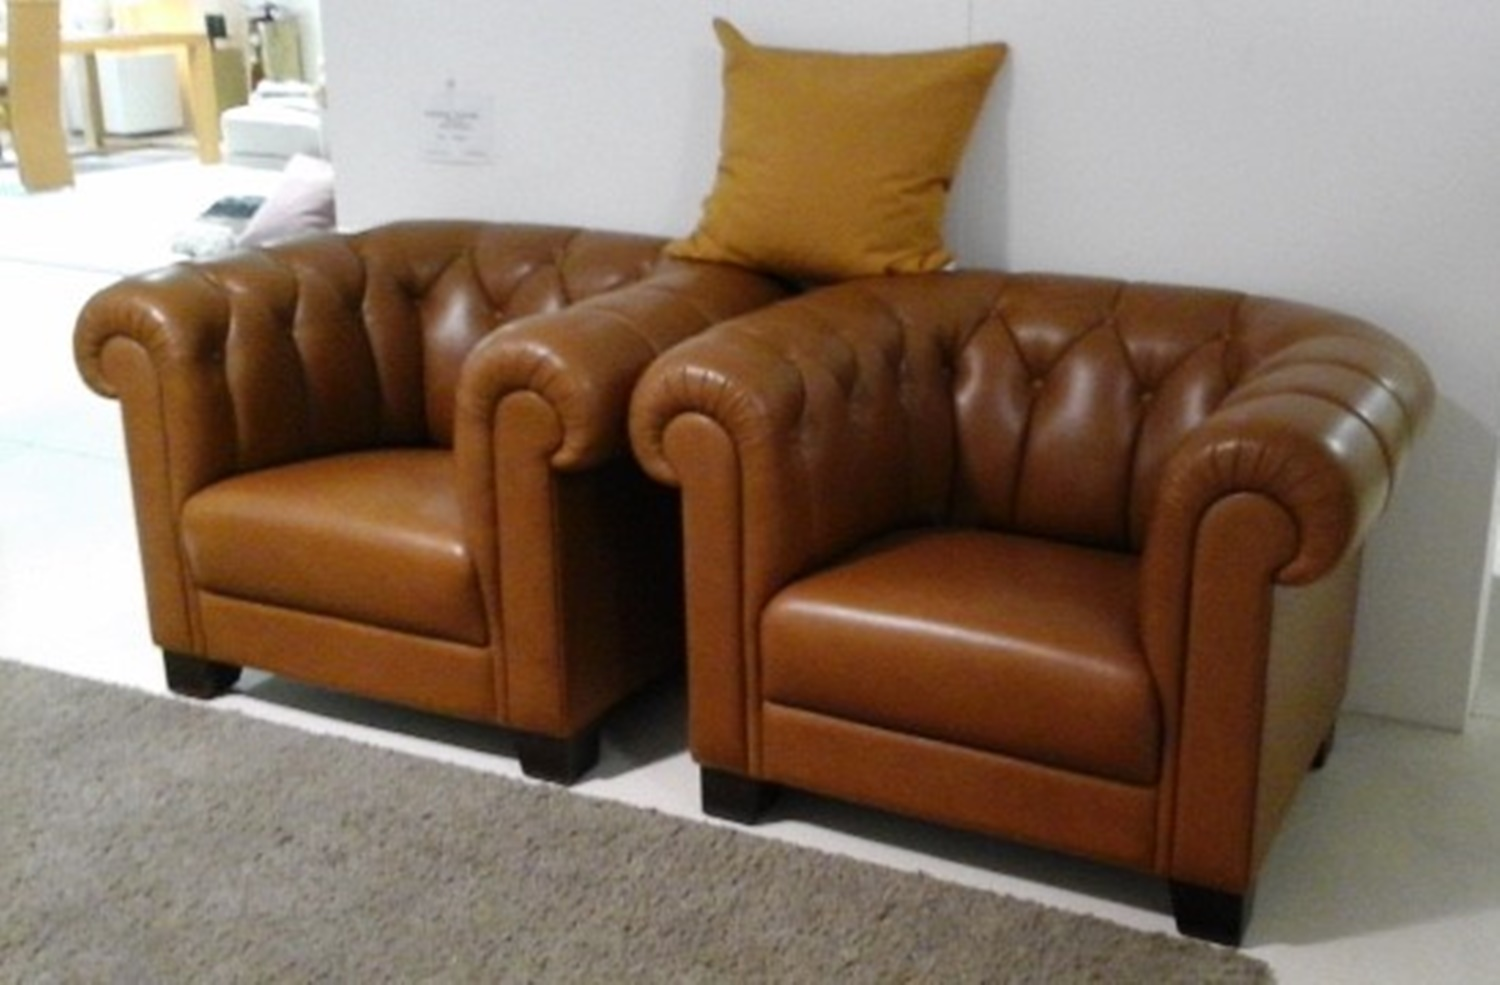 Sessel Chesterfield Zwei Chesterfield Sessel Stieglitz Wohnsinn